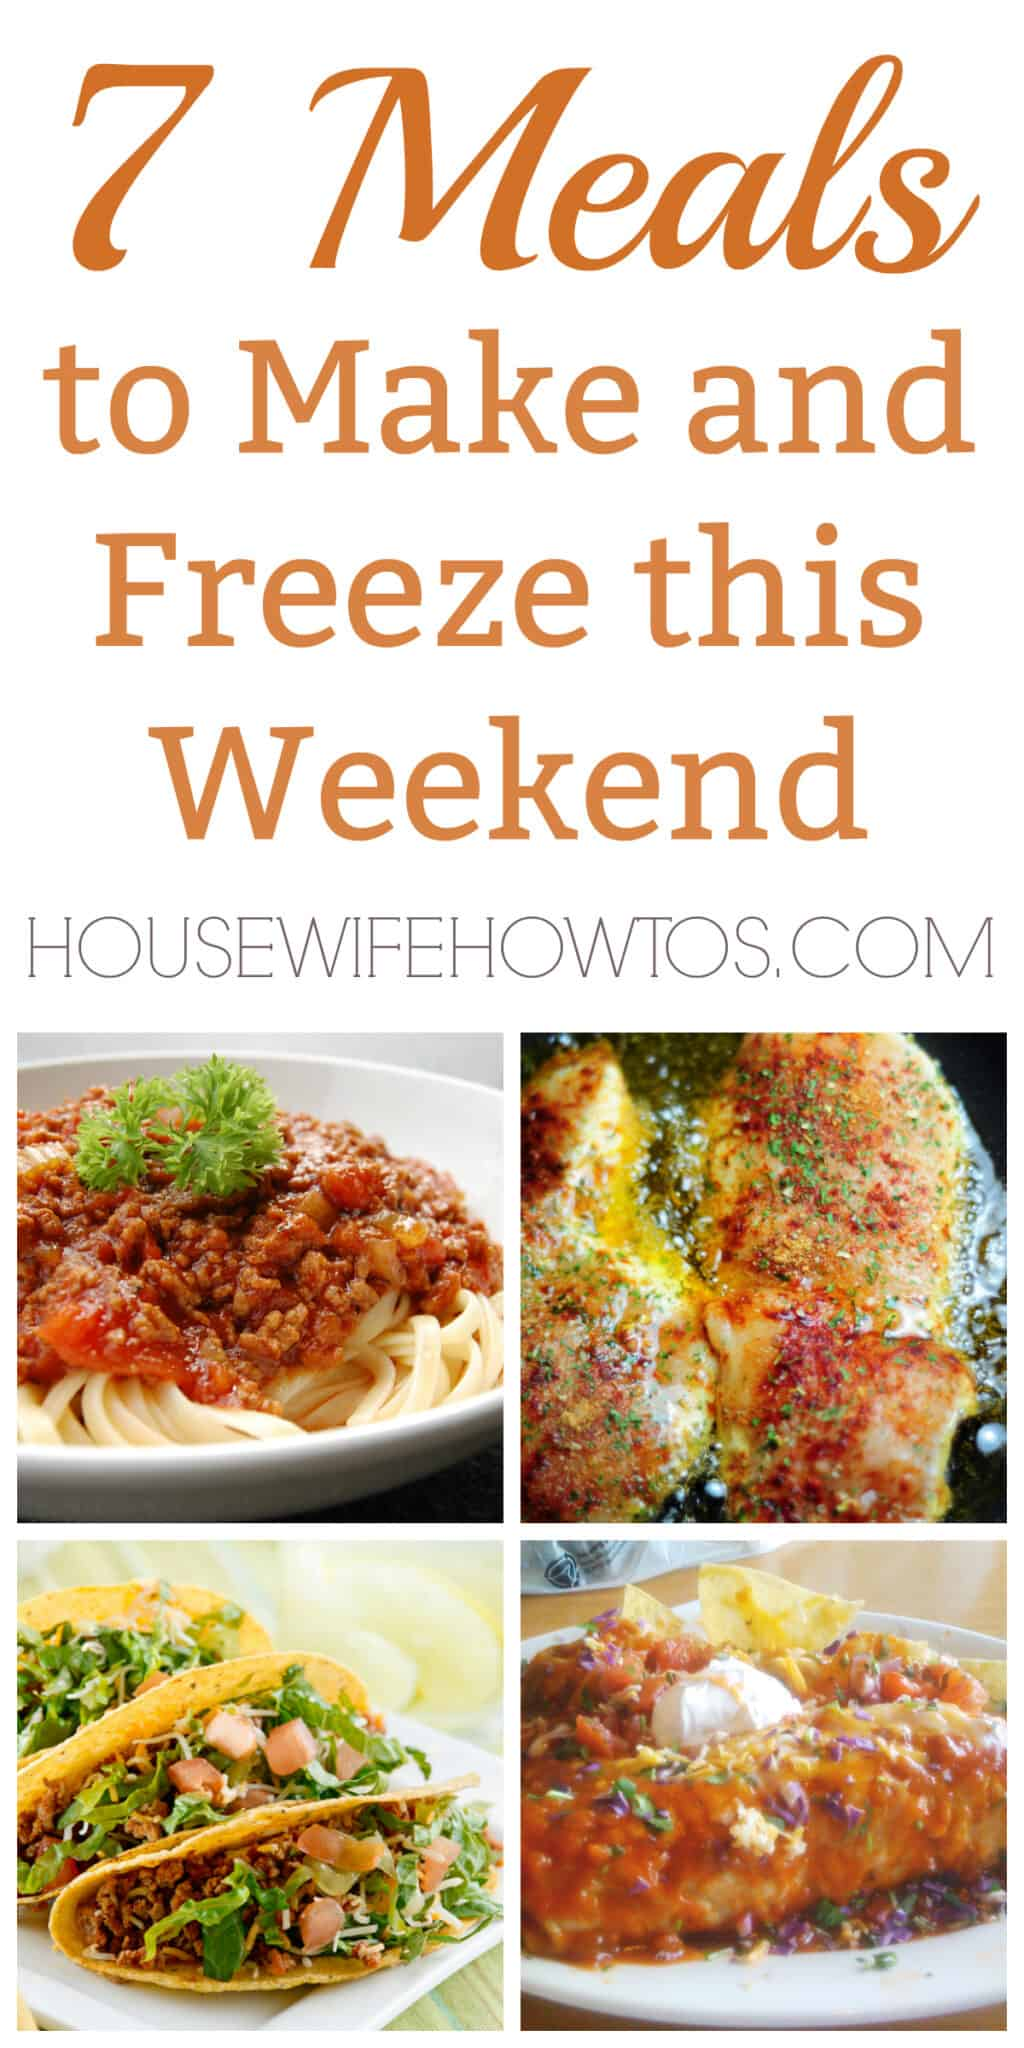 7 Meals to Make and Freeze this Weekend